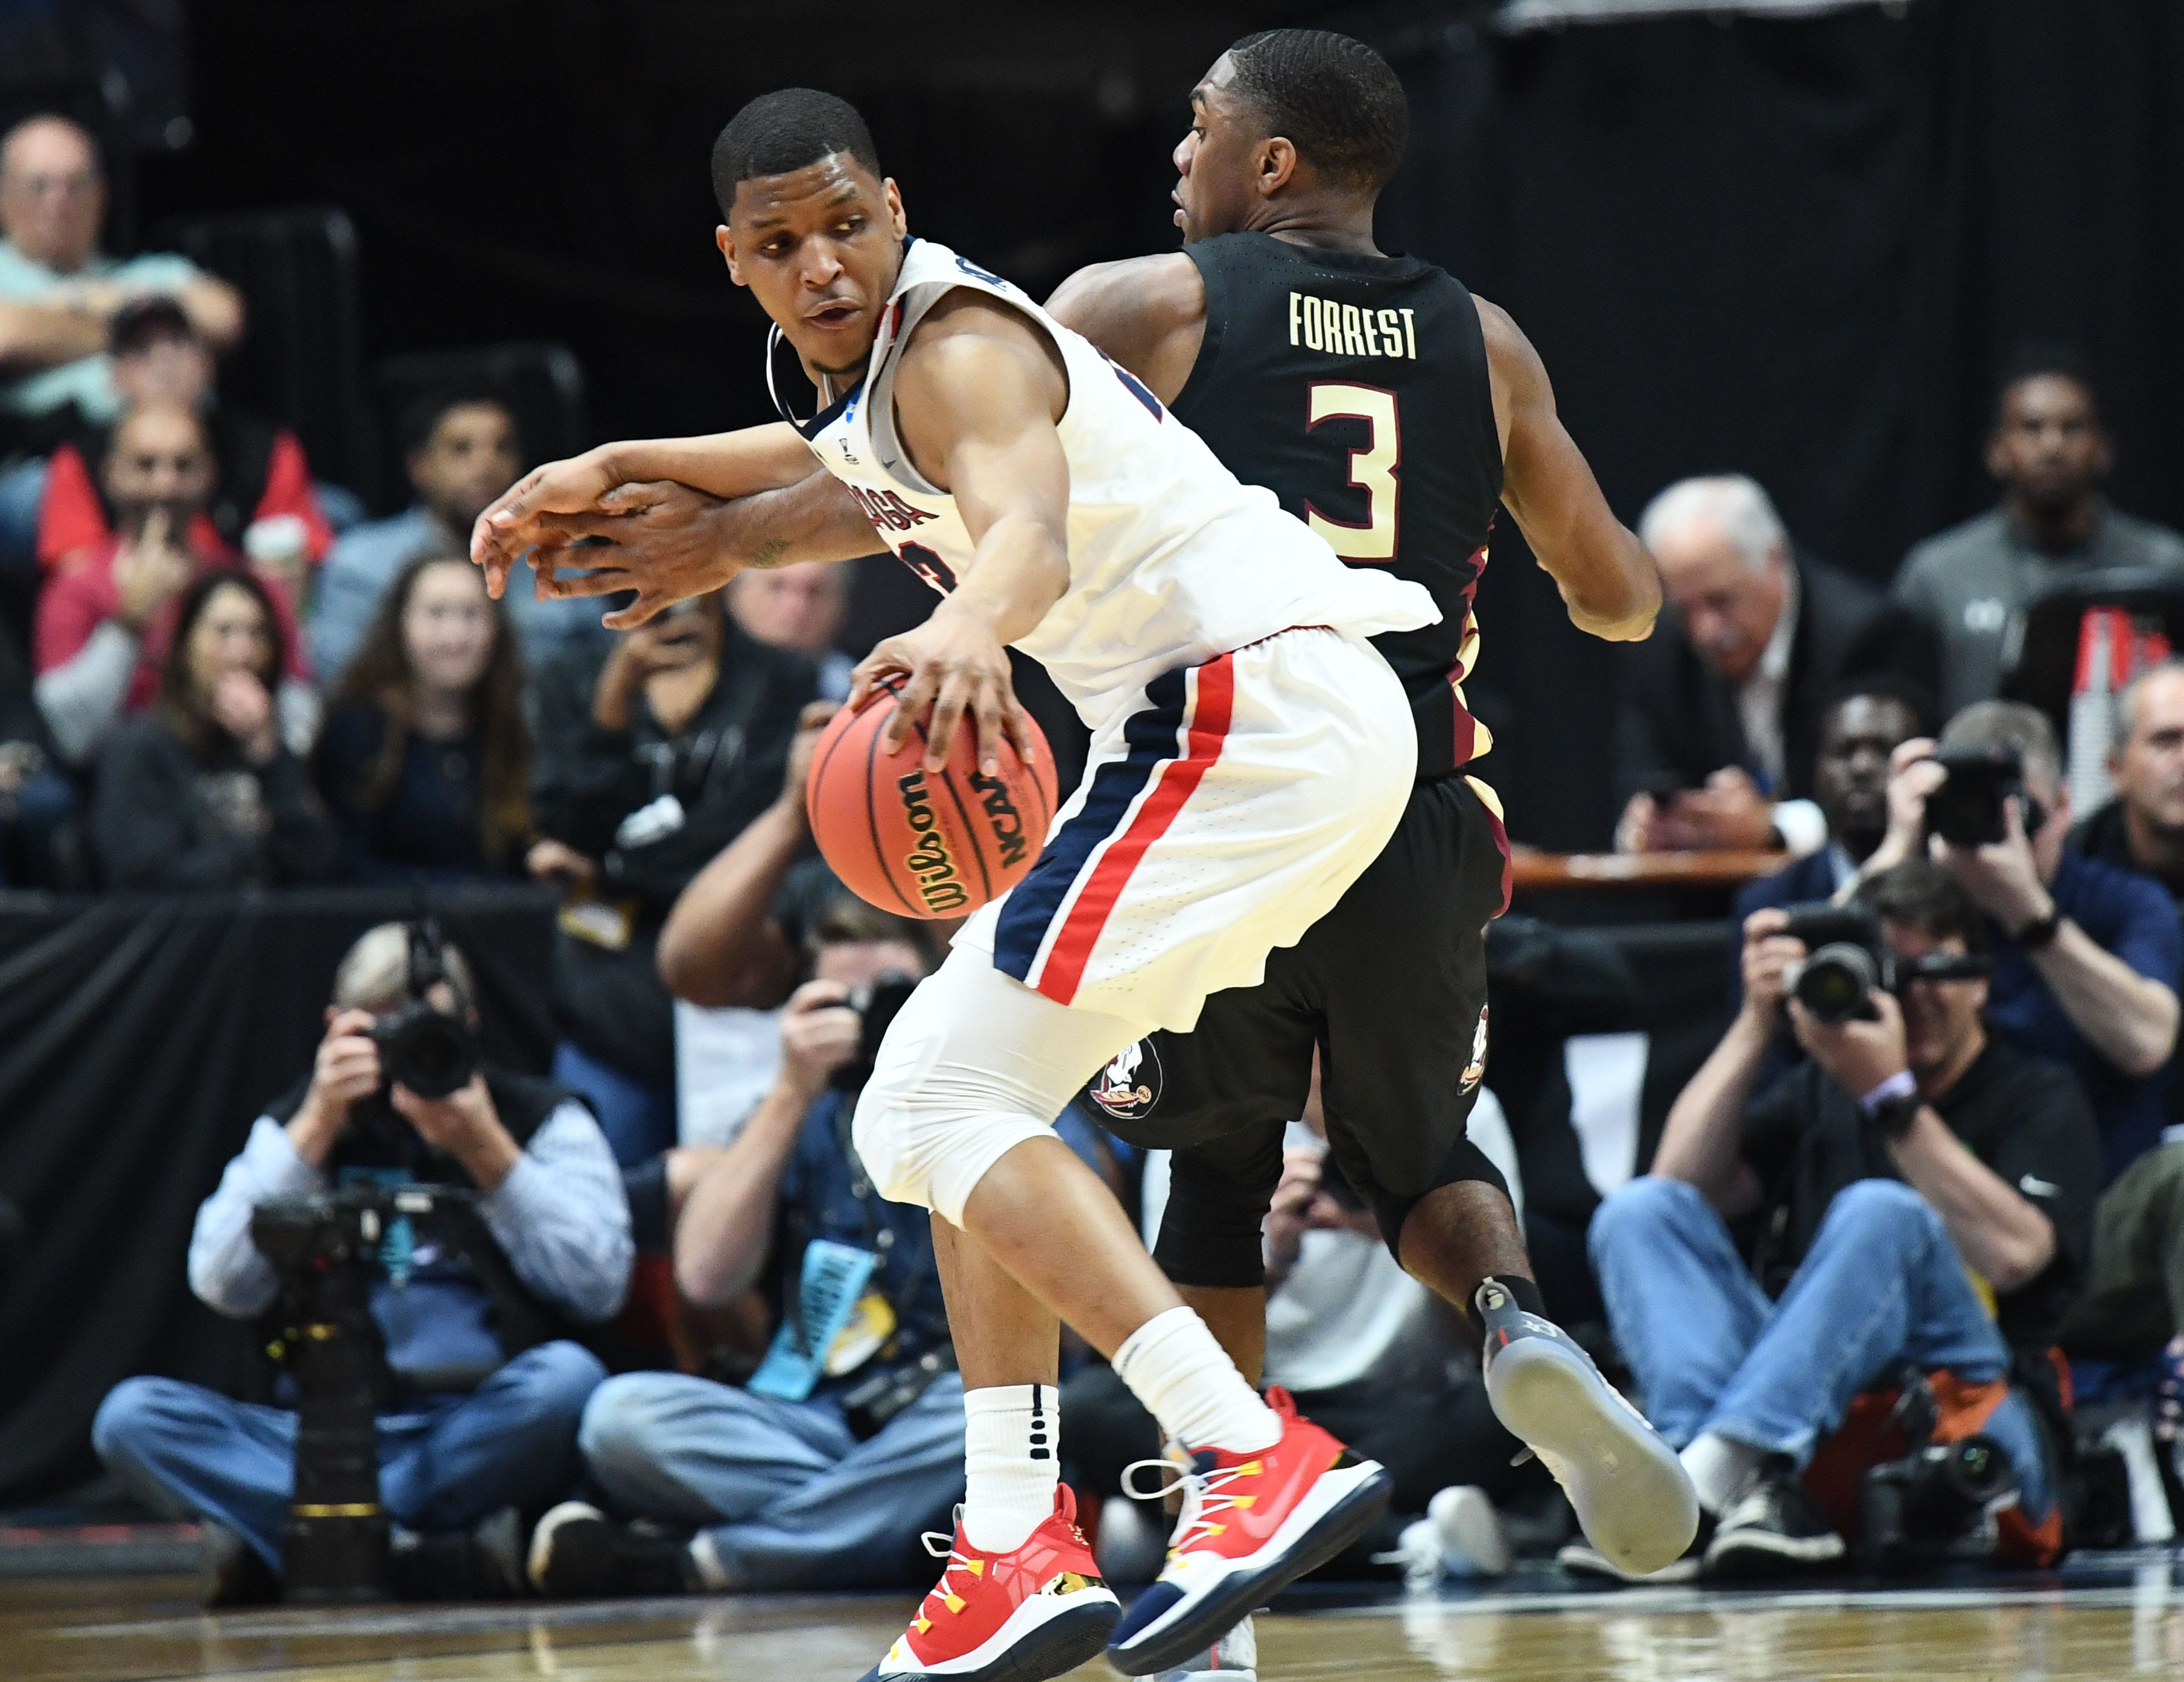 Gonzaga returns to Elite Eight after holding off Florida State